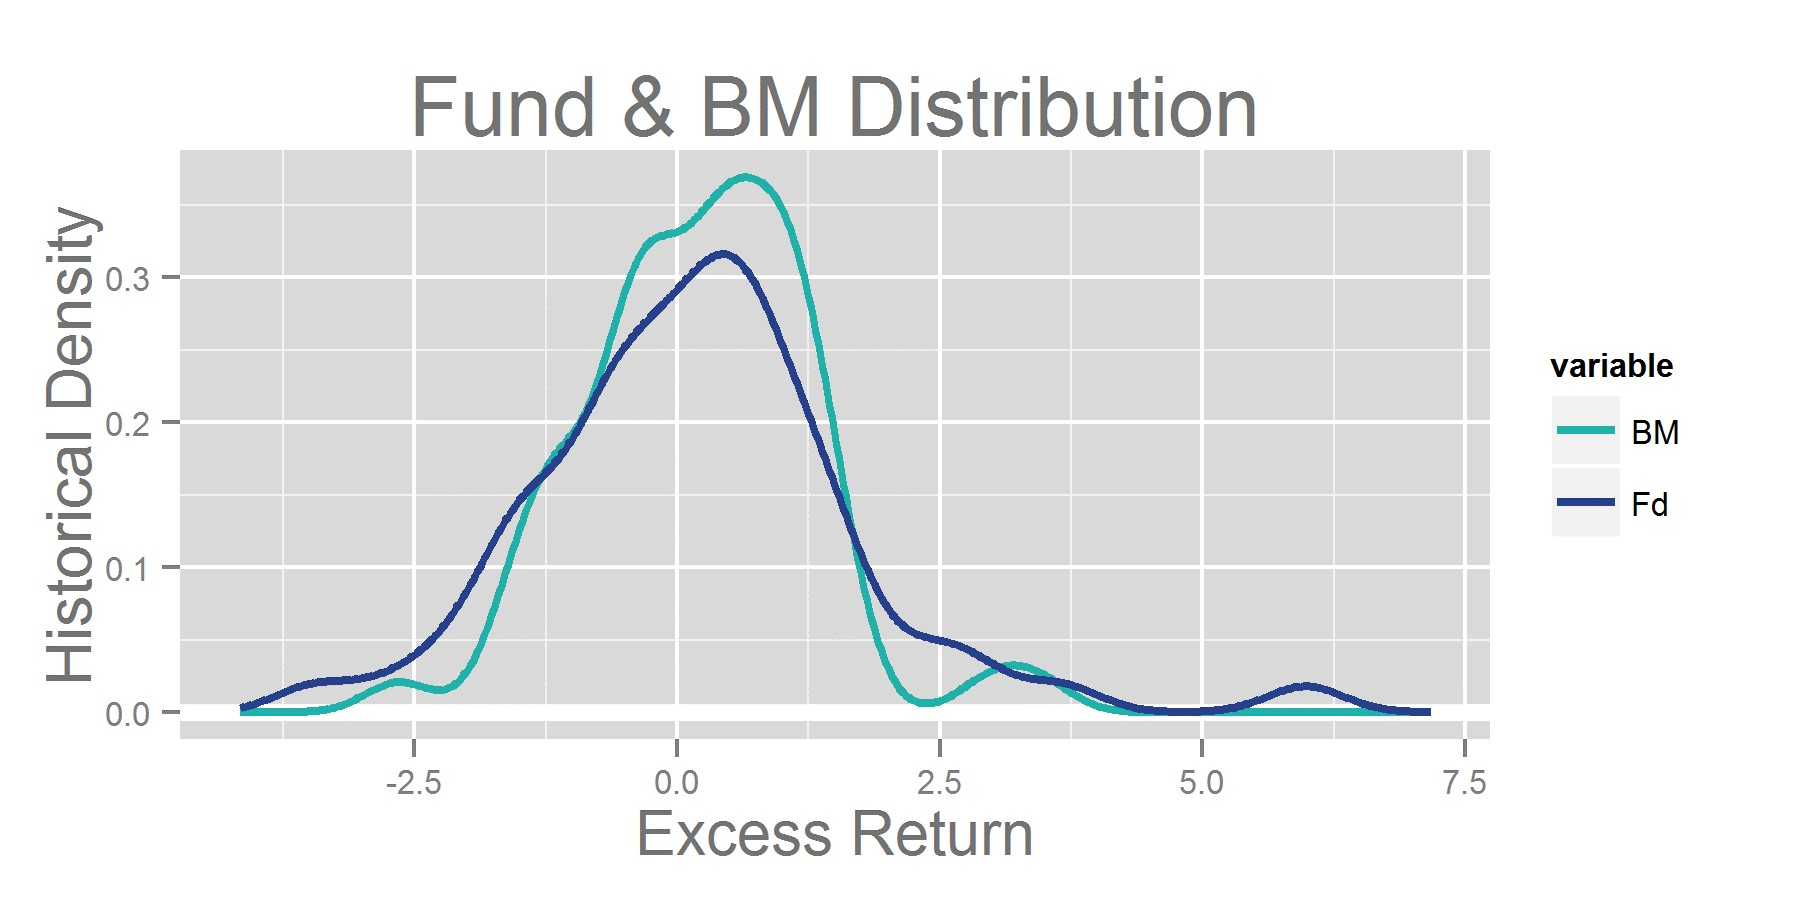 Fund & BM Distribution